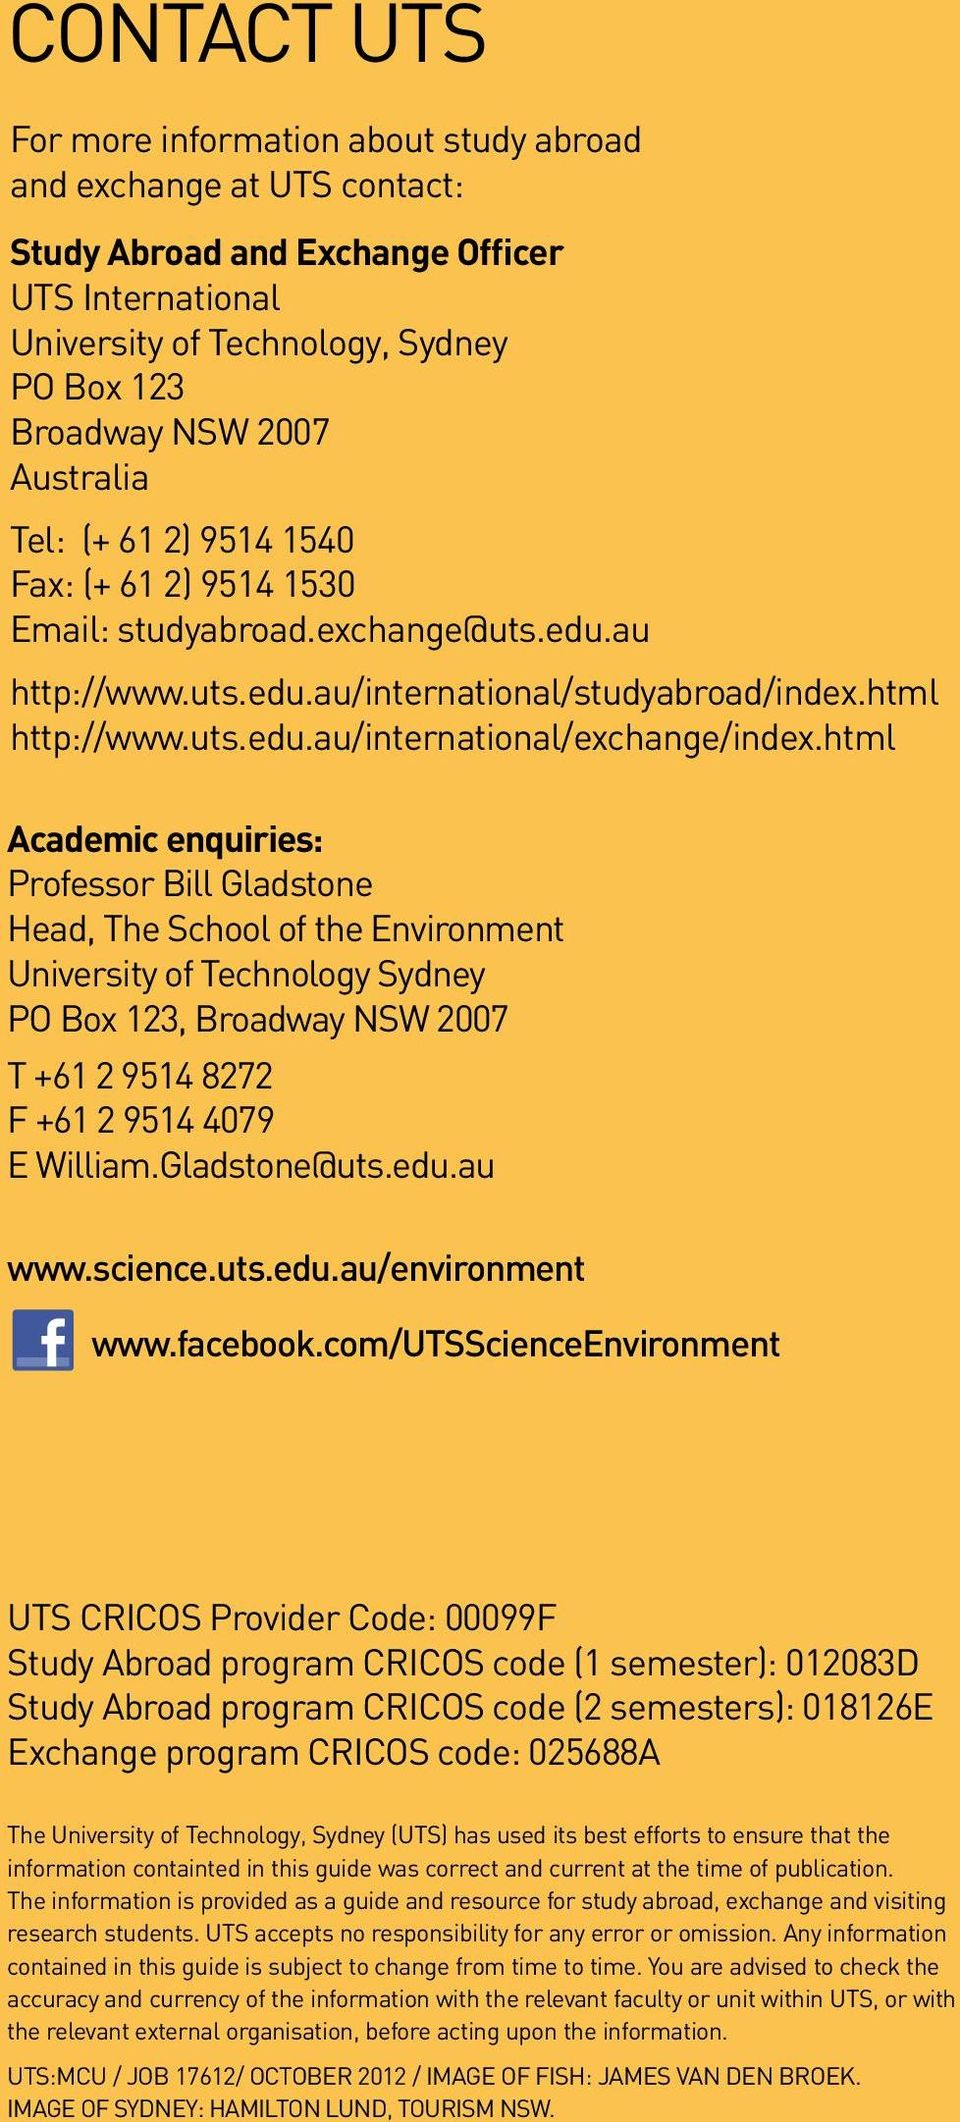 html Academic enquiries: Professor Bill Gladstone Head, The School of the Environment University of Technology Sydney PO Box 123, Broadway NSW 2007 T +61 2 9514 8272 F +61 2 9514 4079 E William.